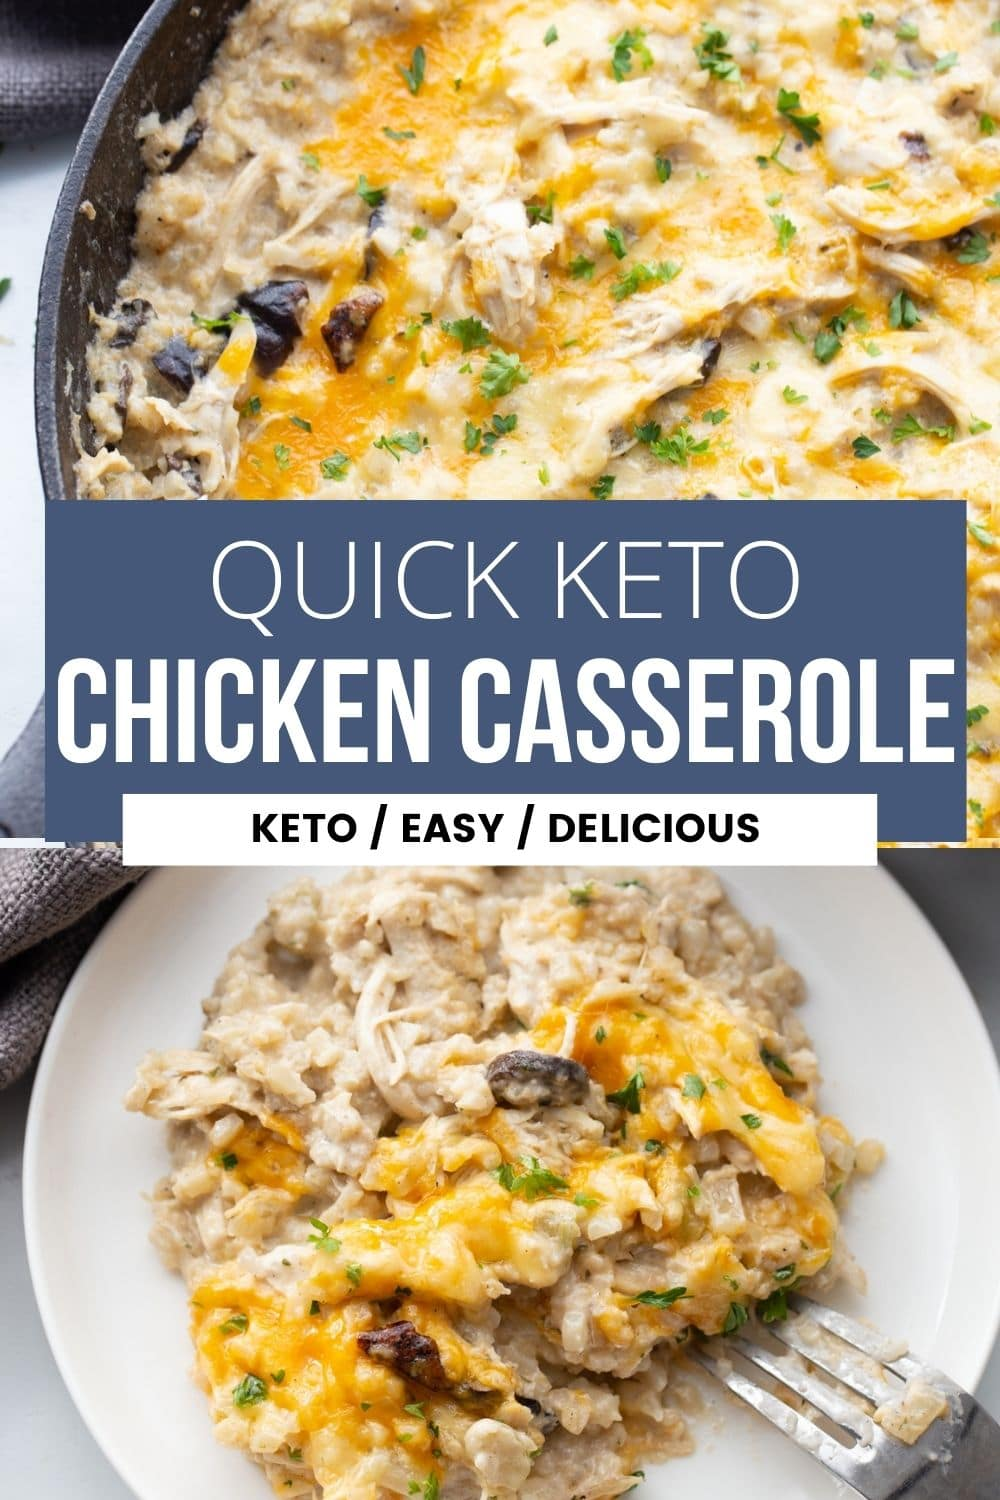 keto chicken and riced cauliflower casserole with cheese in a skillet and on a plate